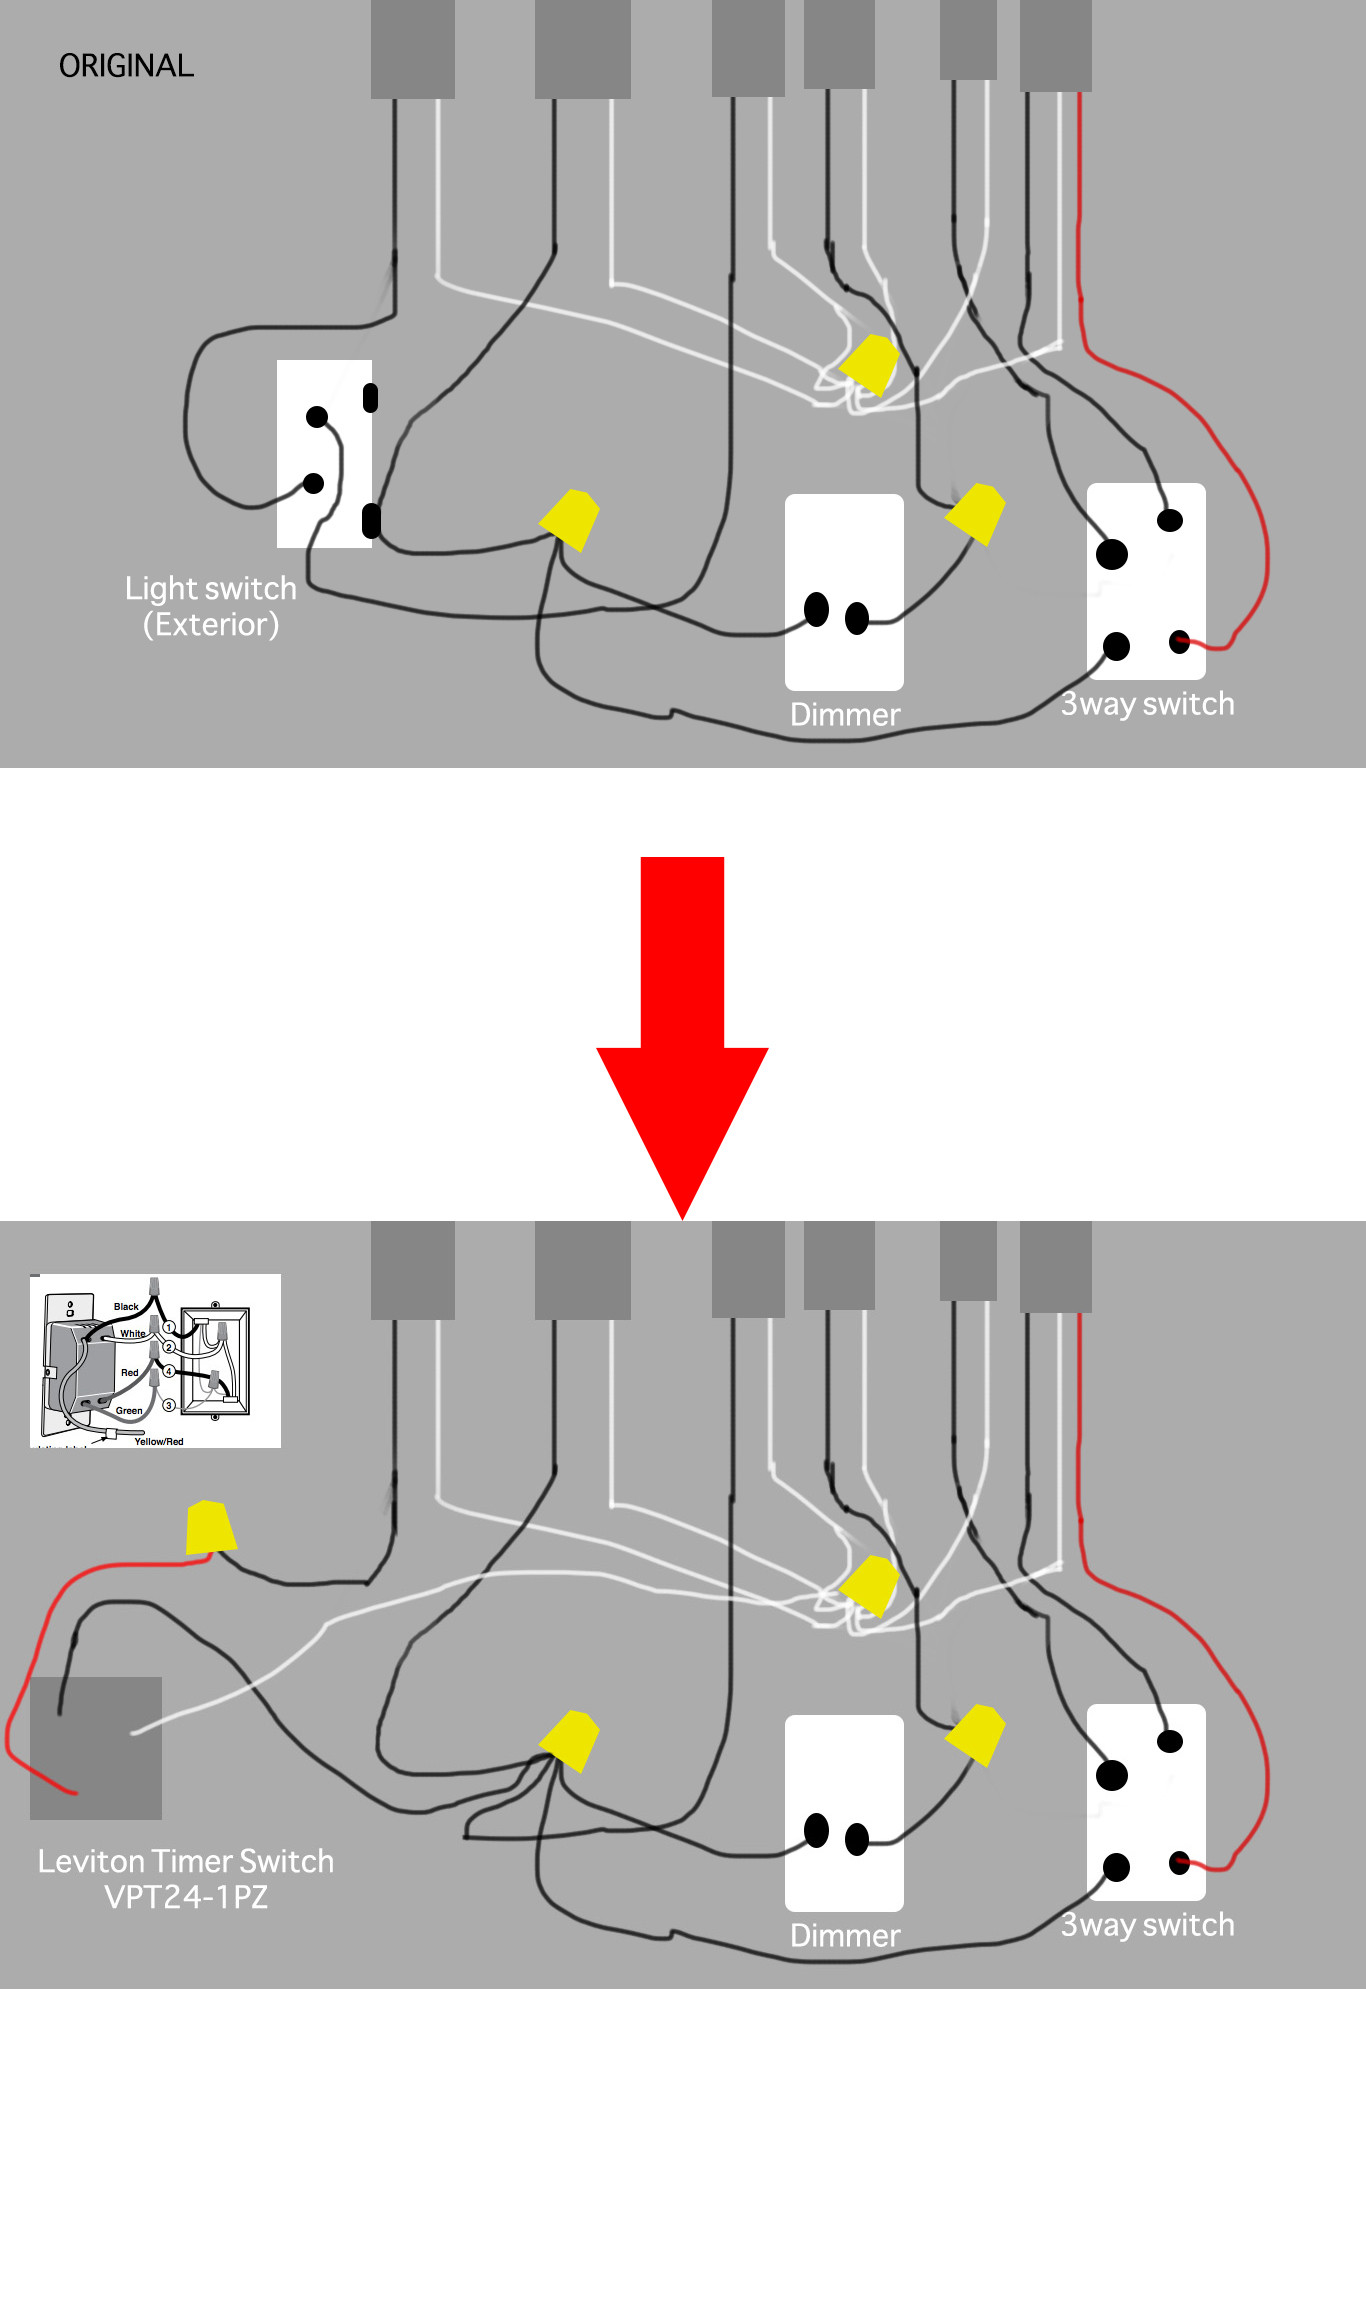 installing a 3 way switch with wiring diagrams coleman evcon heat pump diagram how can i install leviton timer in this box